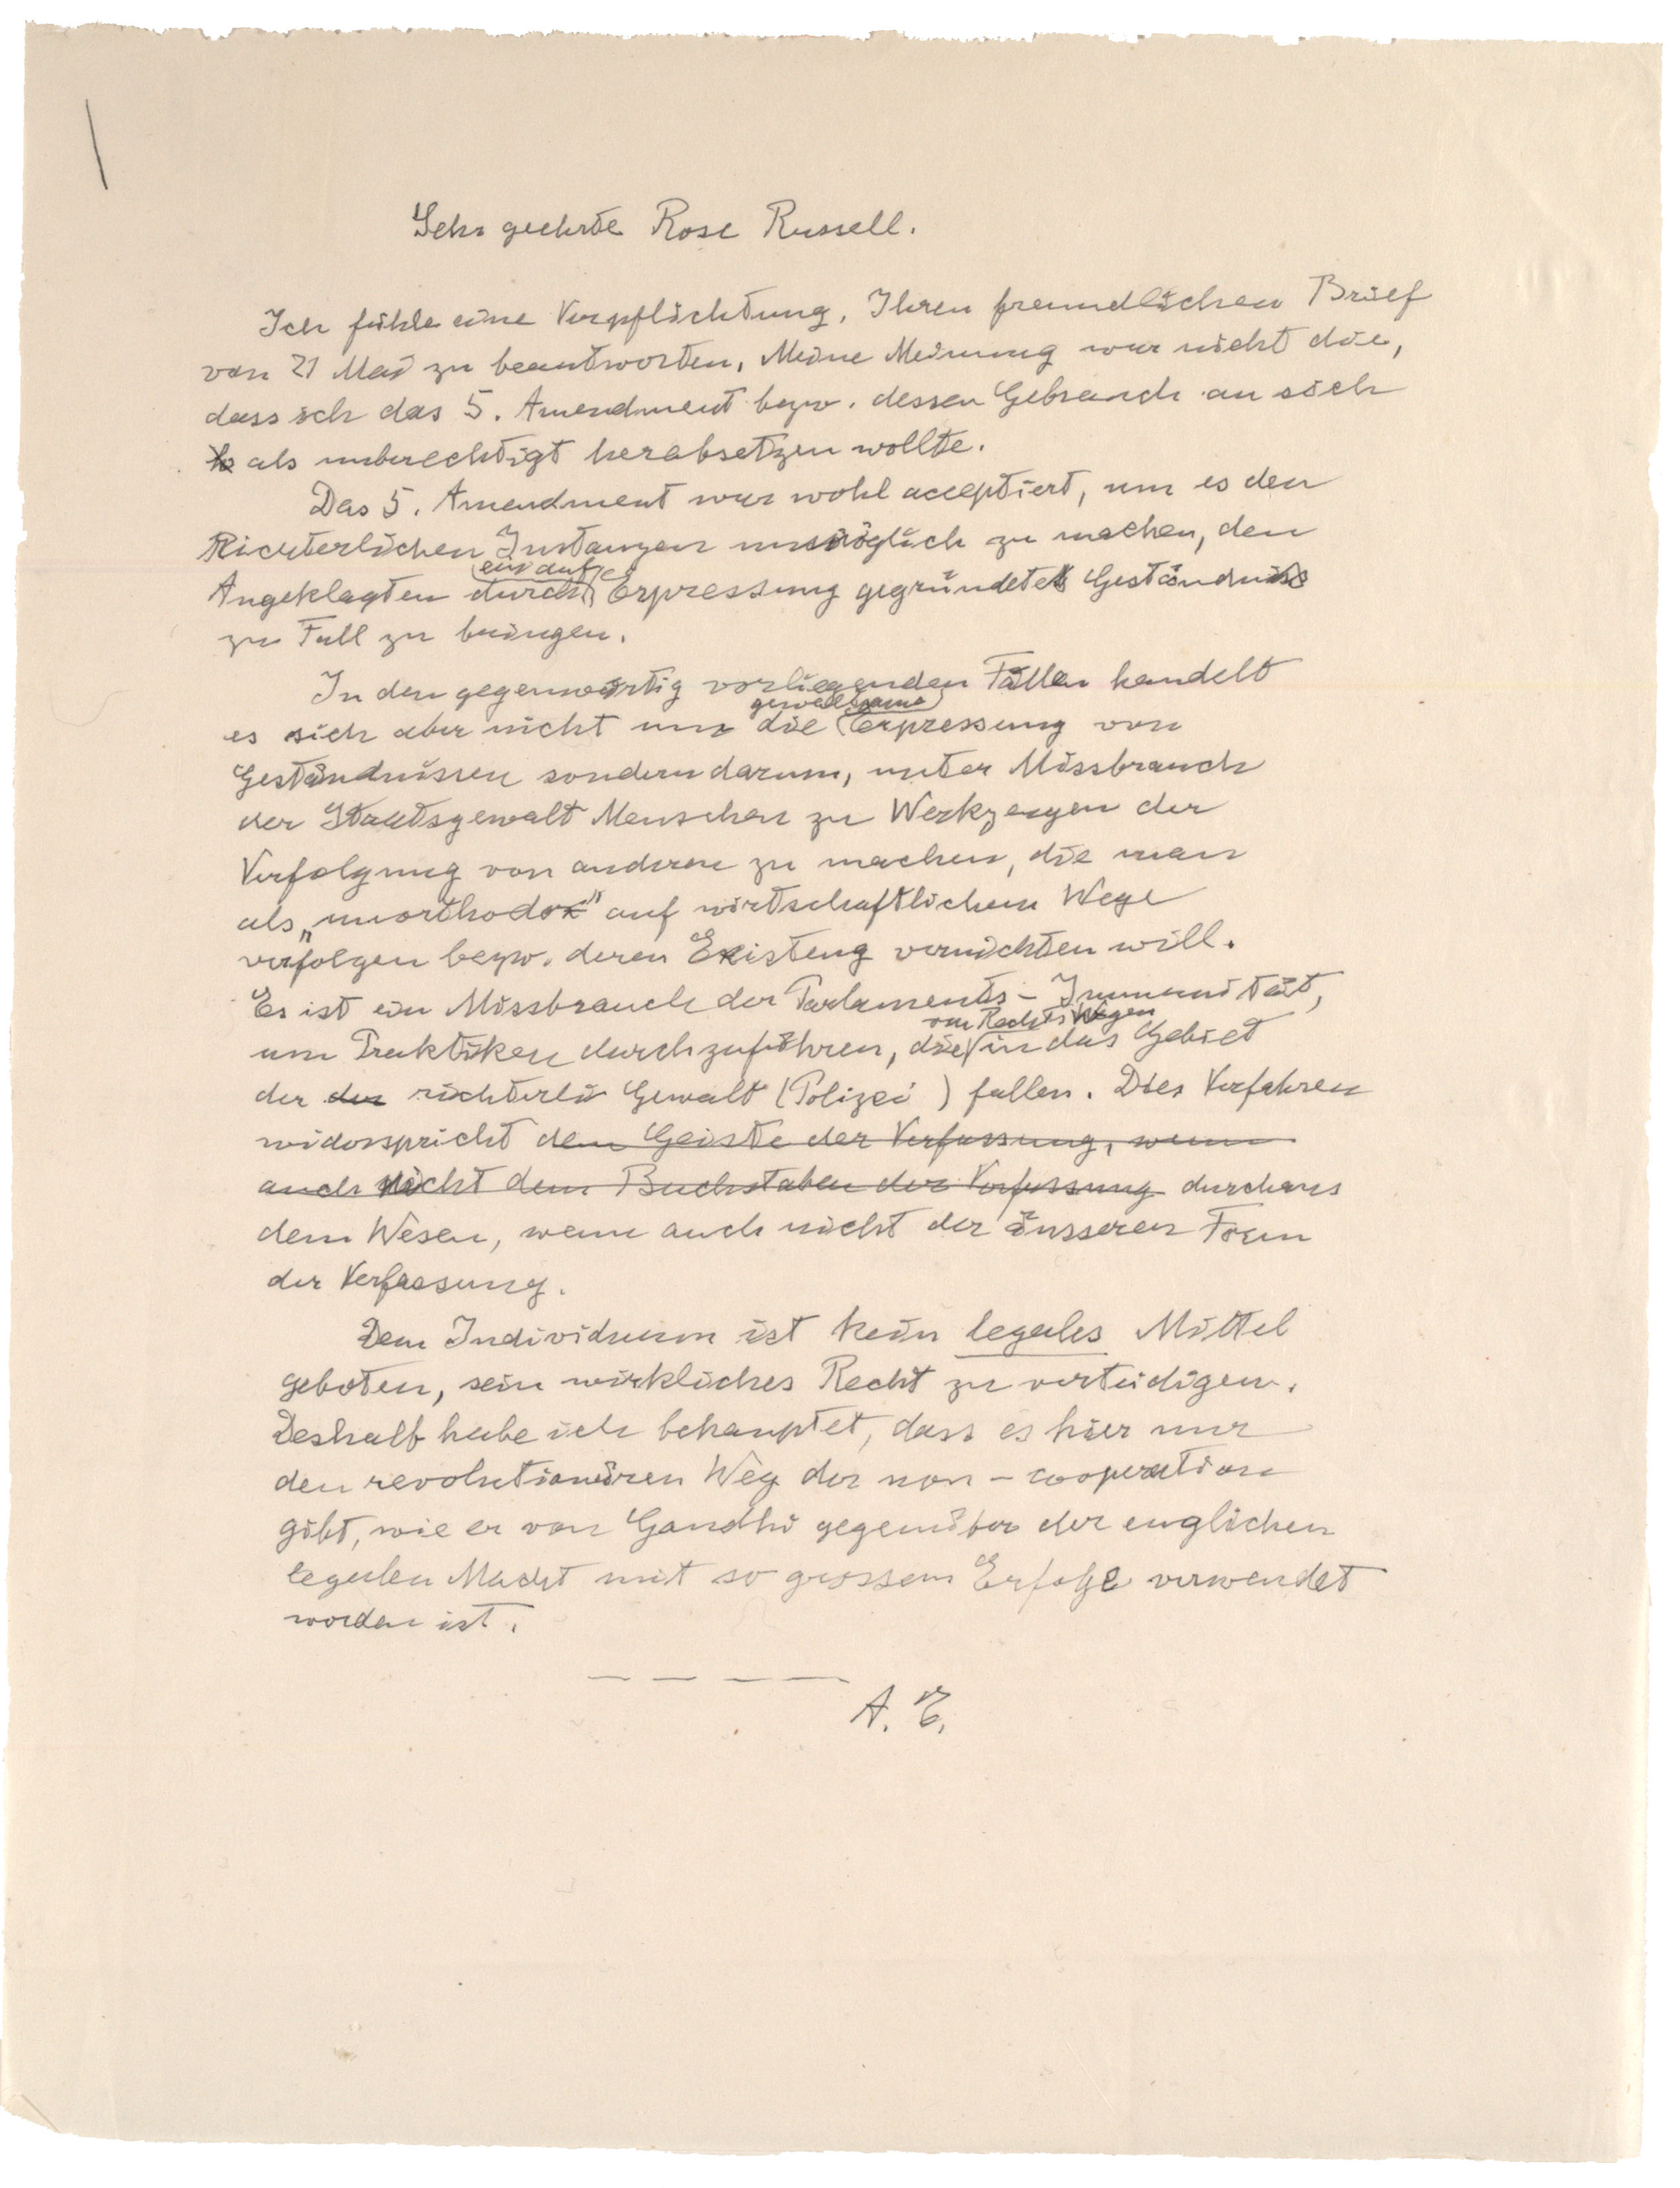 Albert Einstein to Rose Russell [in German], [May 28], 1953. (Gilder Lehrman Col